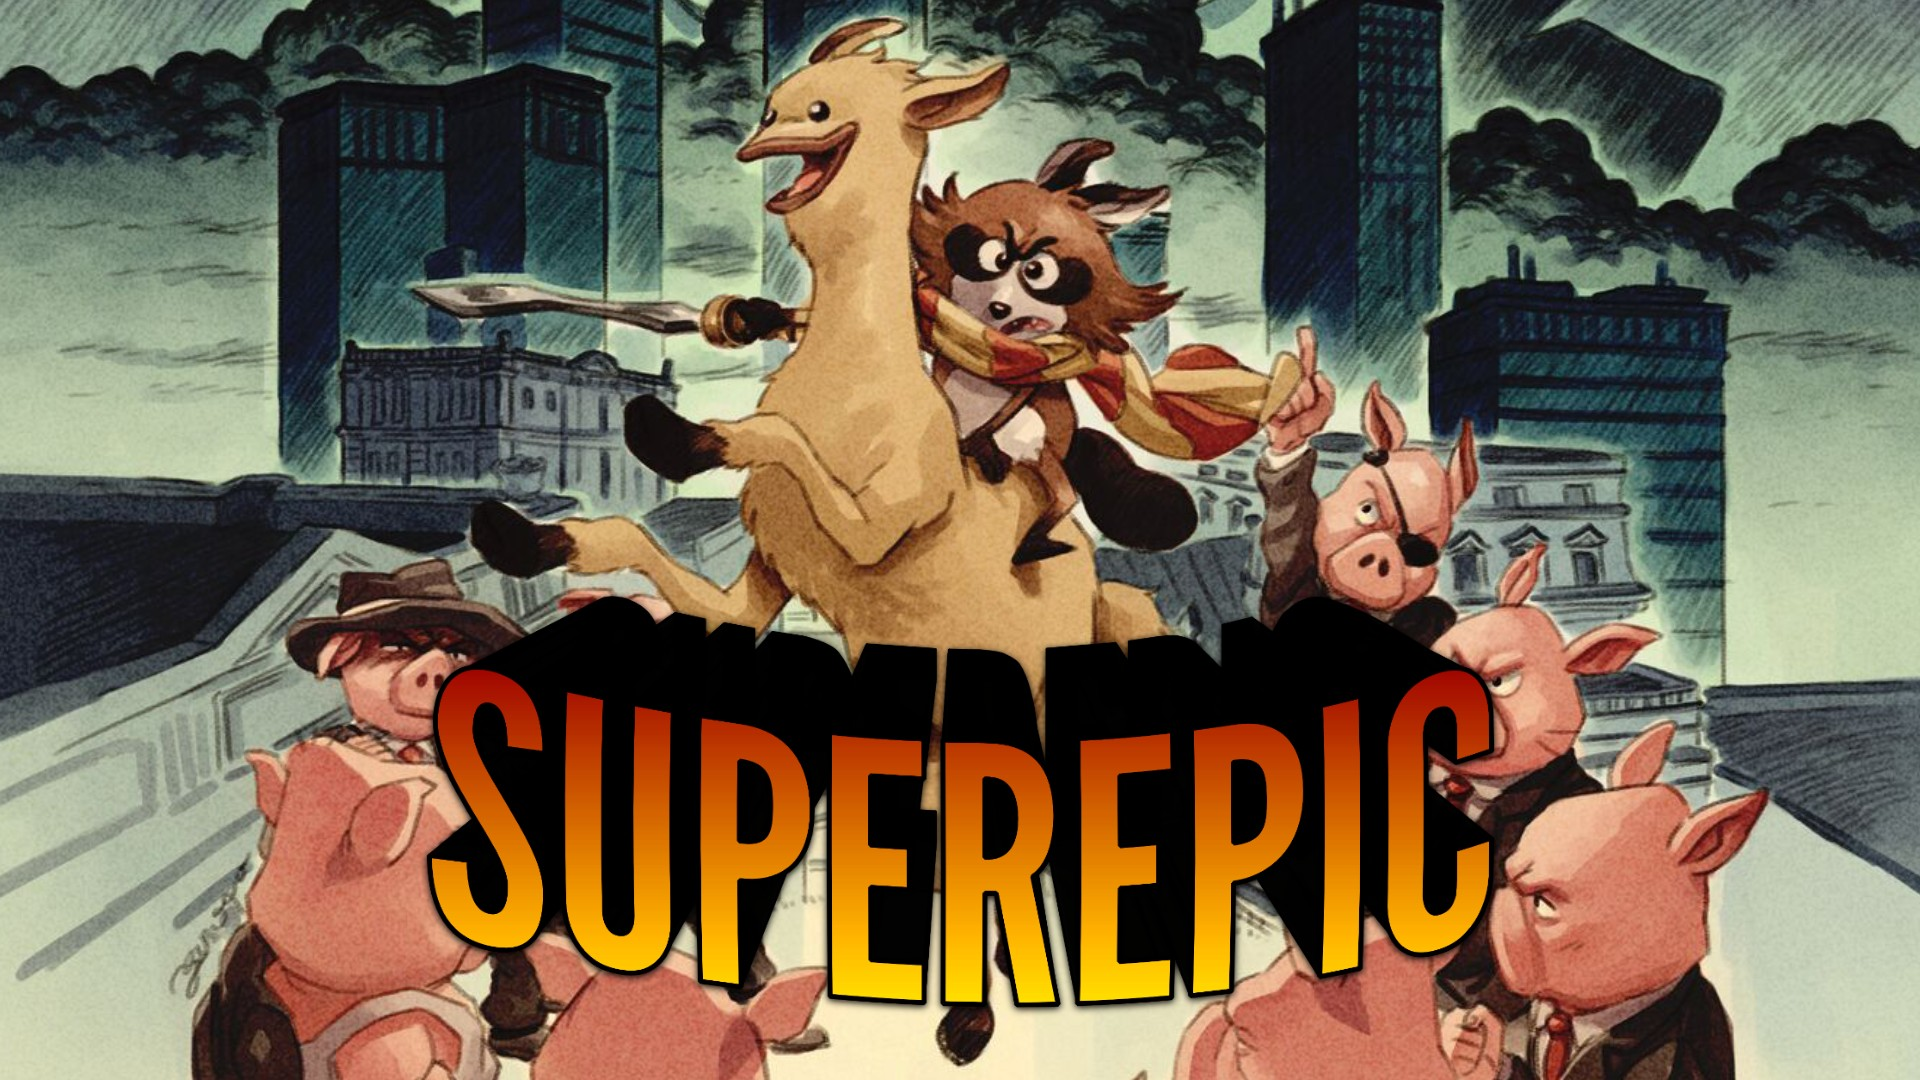 SuperEpic Review